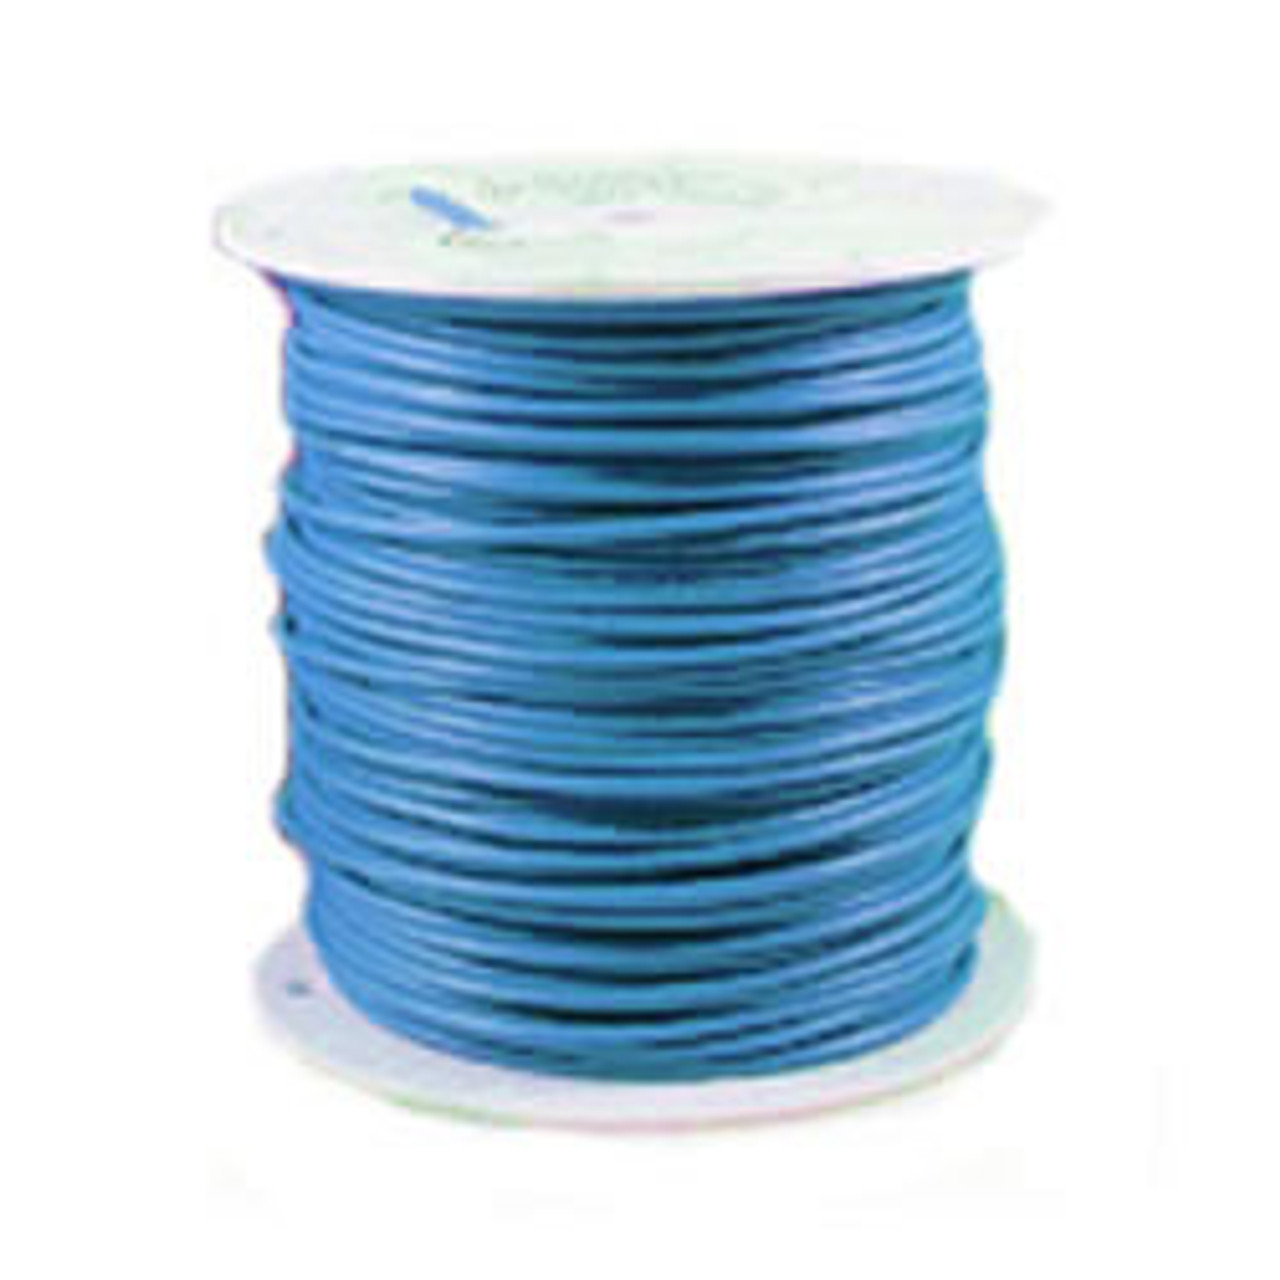 1.5mm Blue Tracer Wire